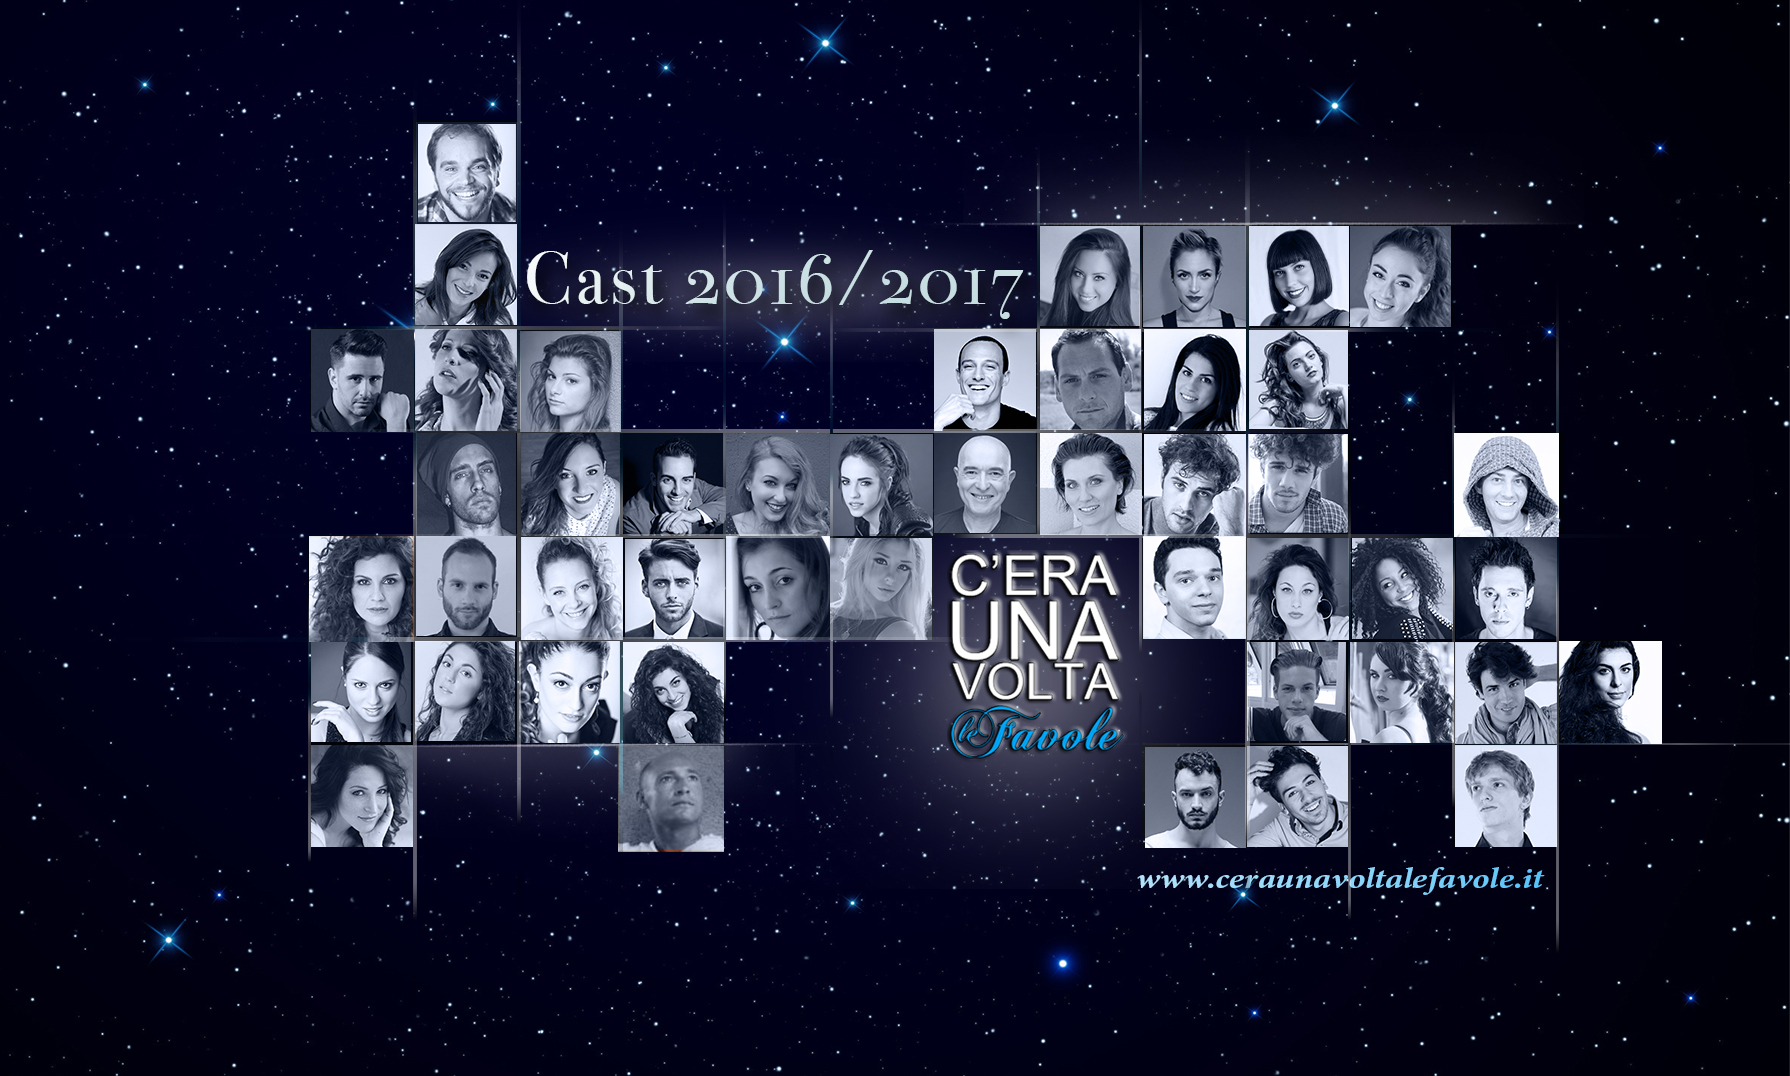 C' era una volta... le Favole 2016 - 2017 il cast